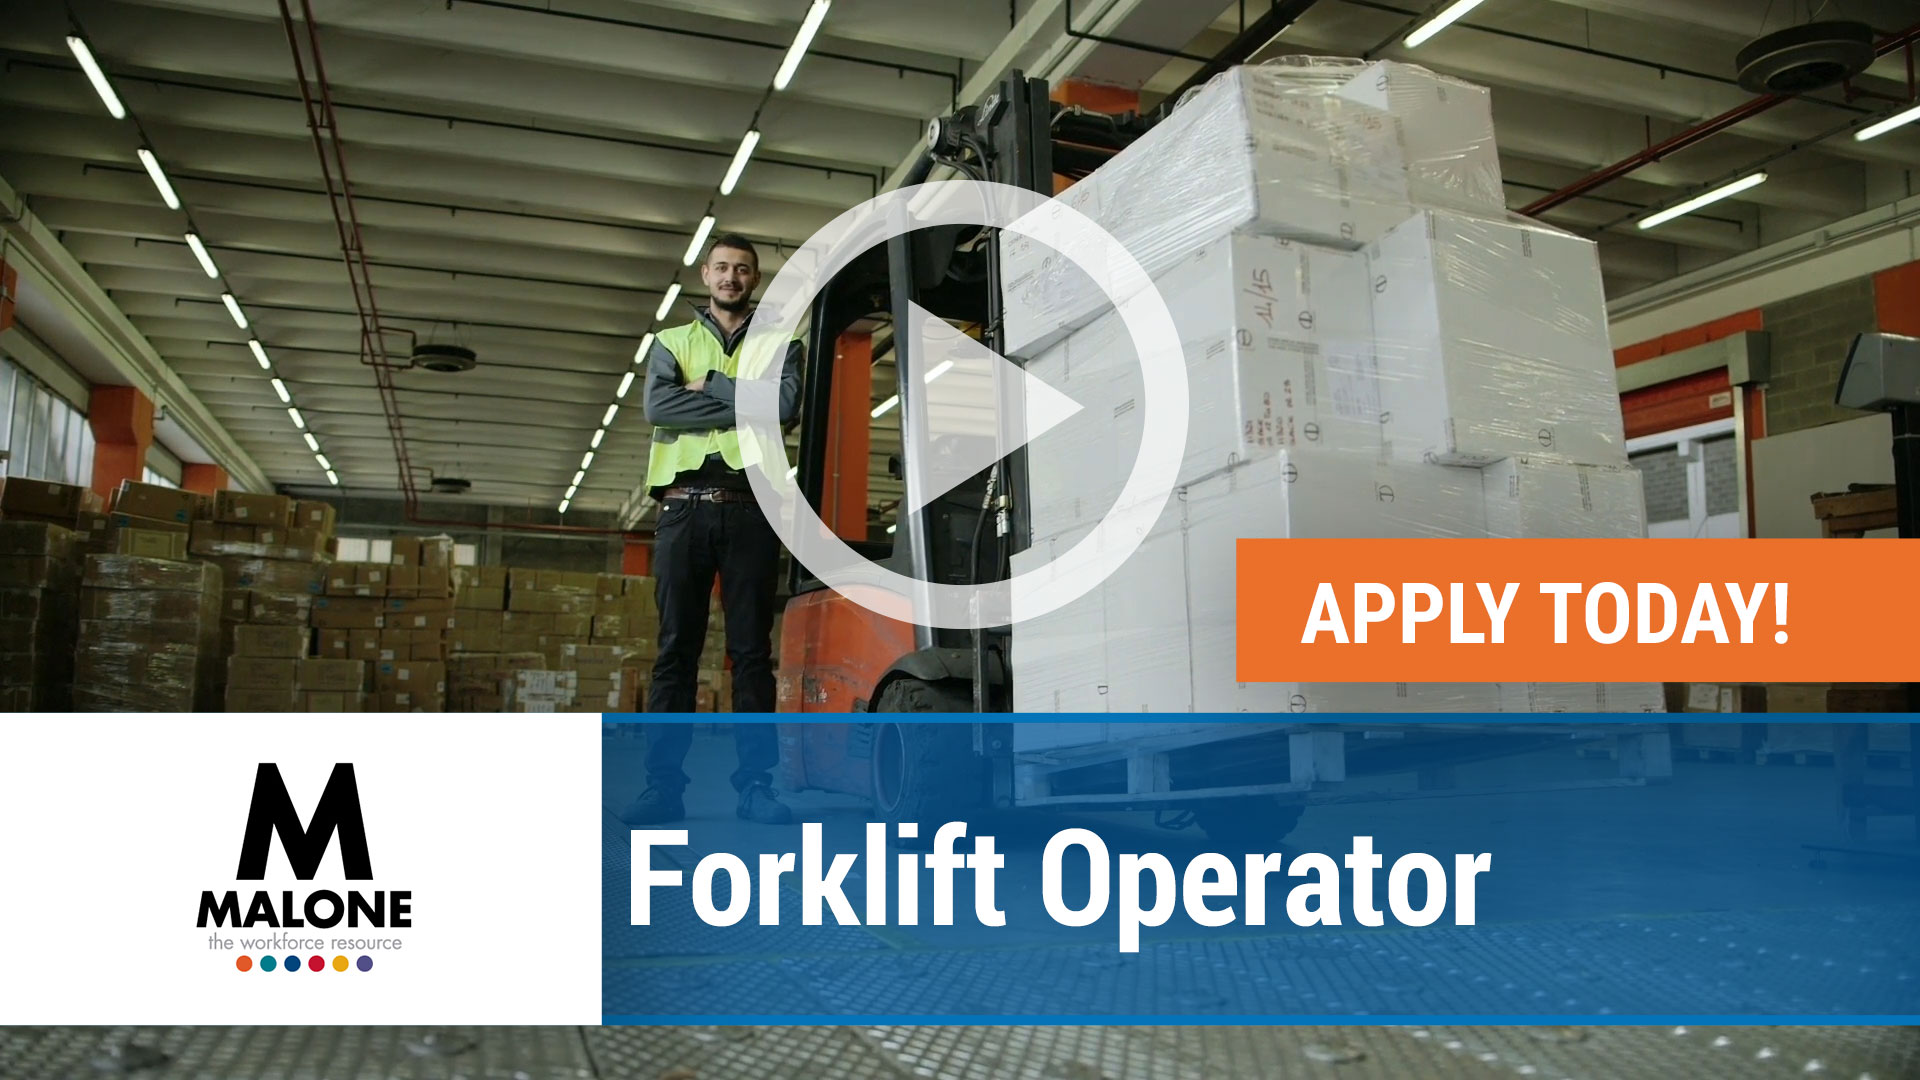 Watch our careers video for available job opening Forklift Operator in Louisville, Kentucky